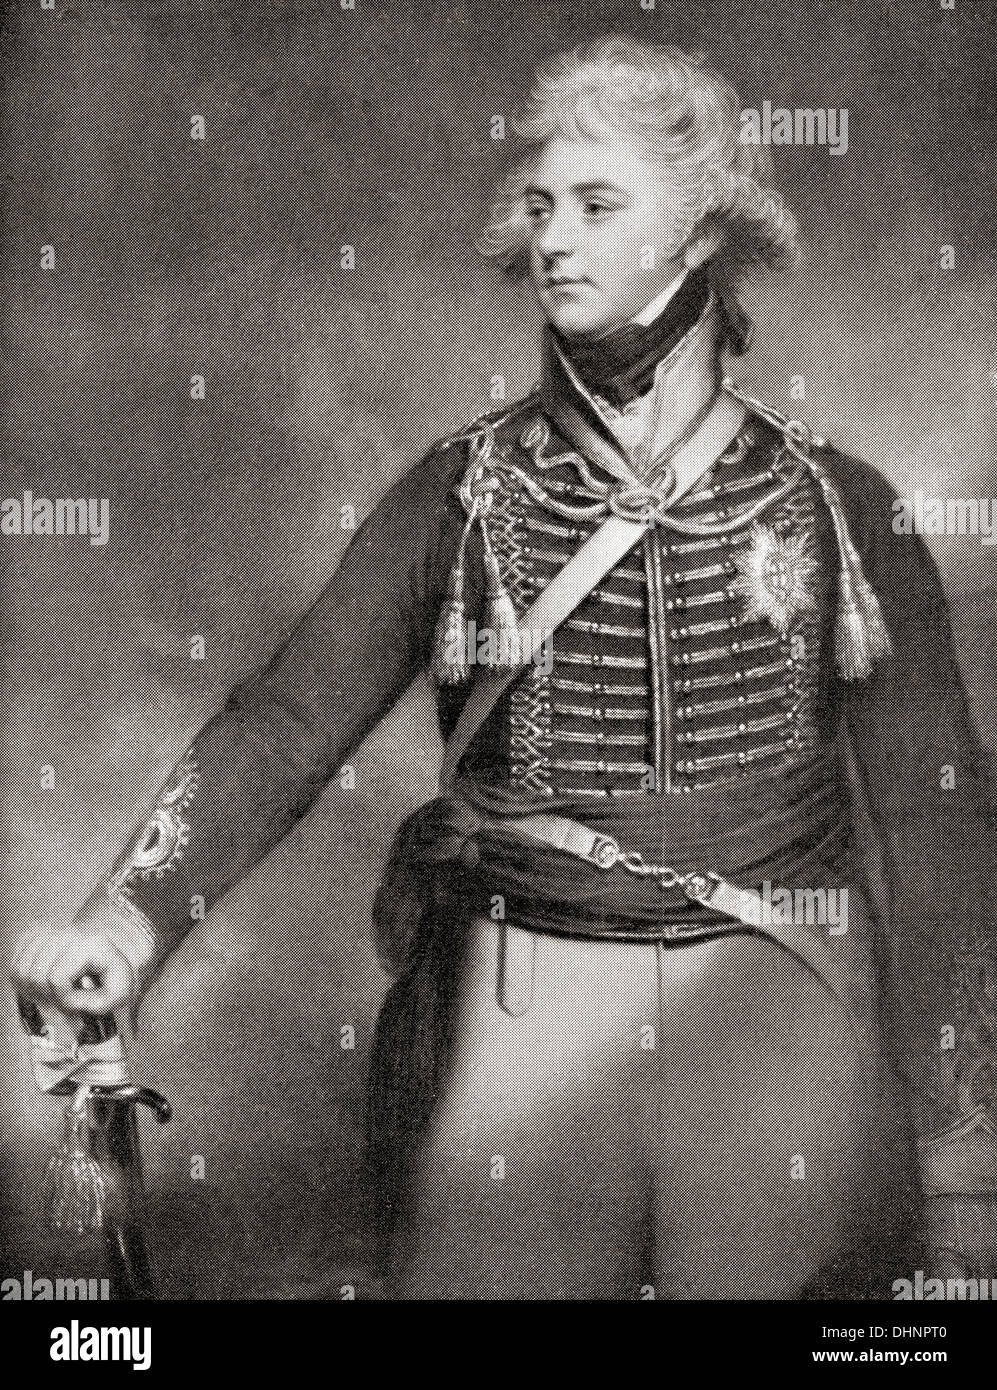 George, Prince of Wales, later George IV, 1762 –1830, aged 36. - Stock Image